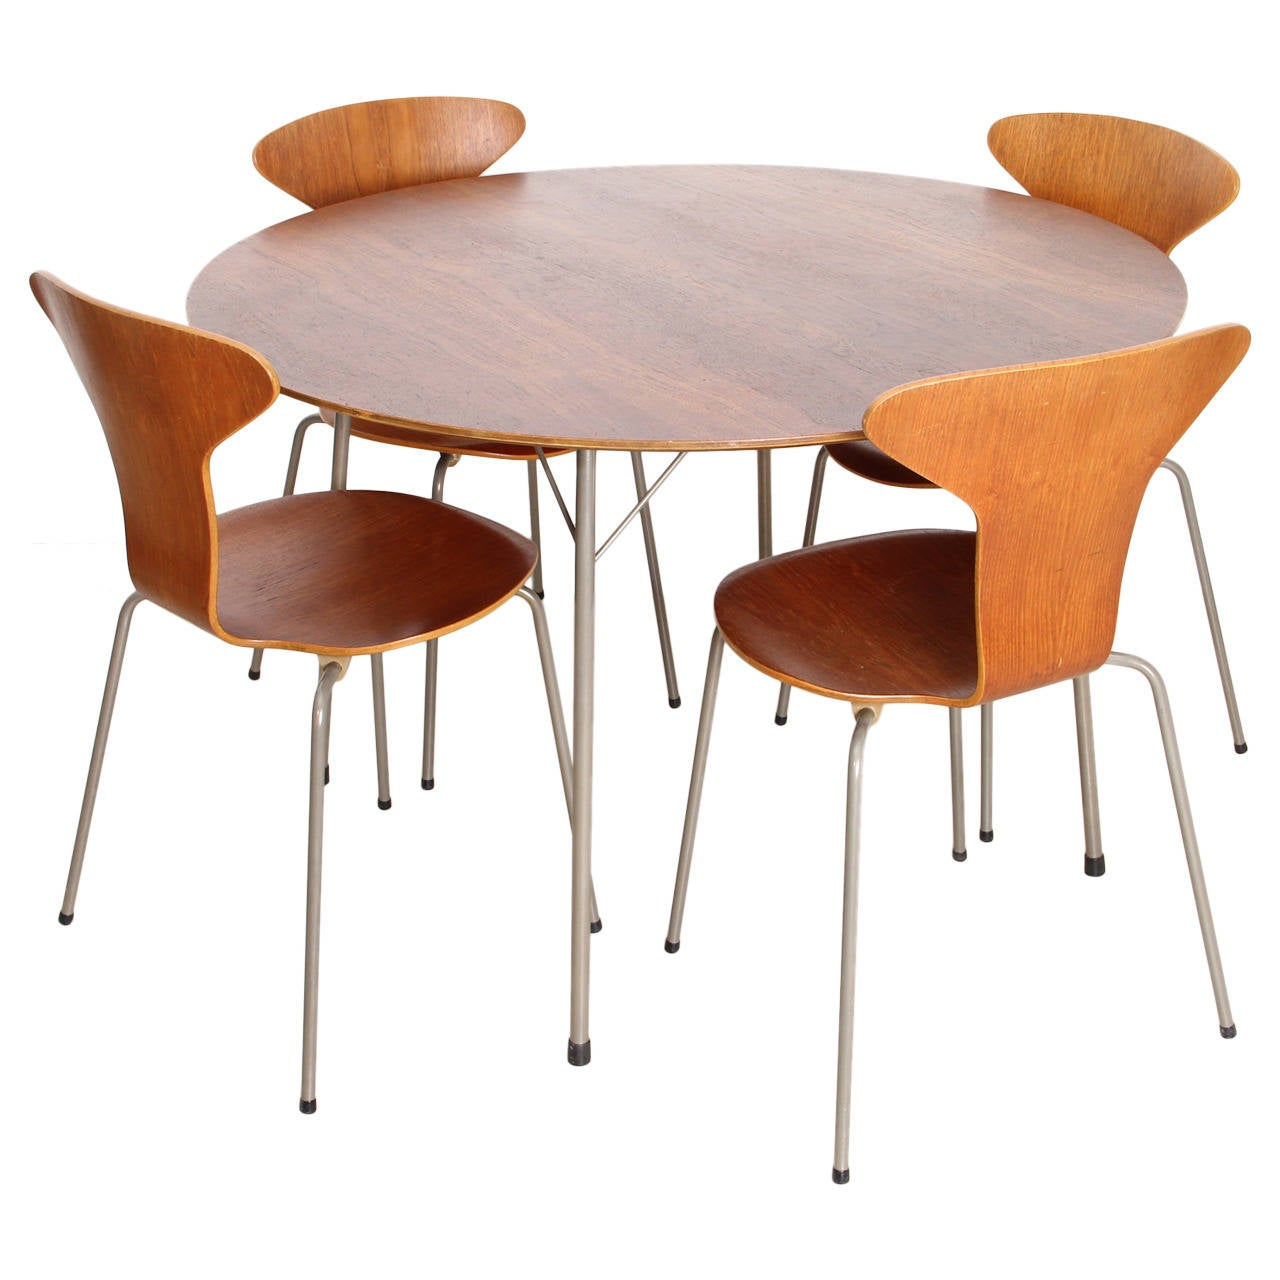 arne jacobsen dining set with four mosquito chairs. Black Bedroom Furniture Sets. Home Design Ideas